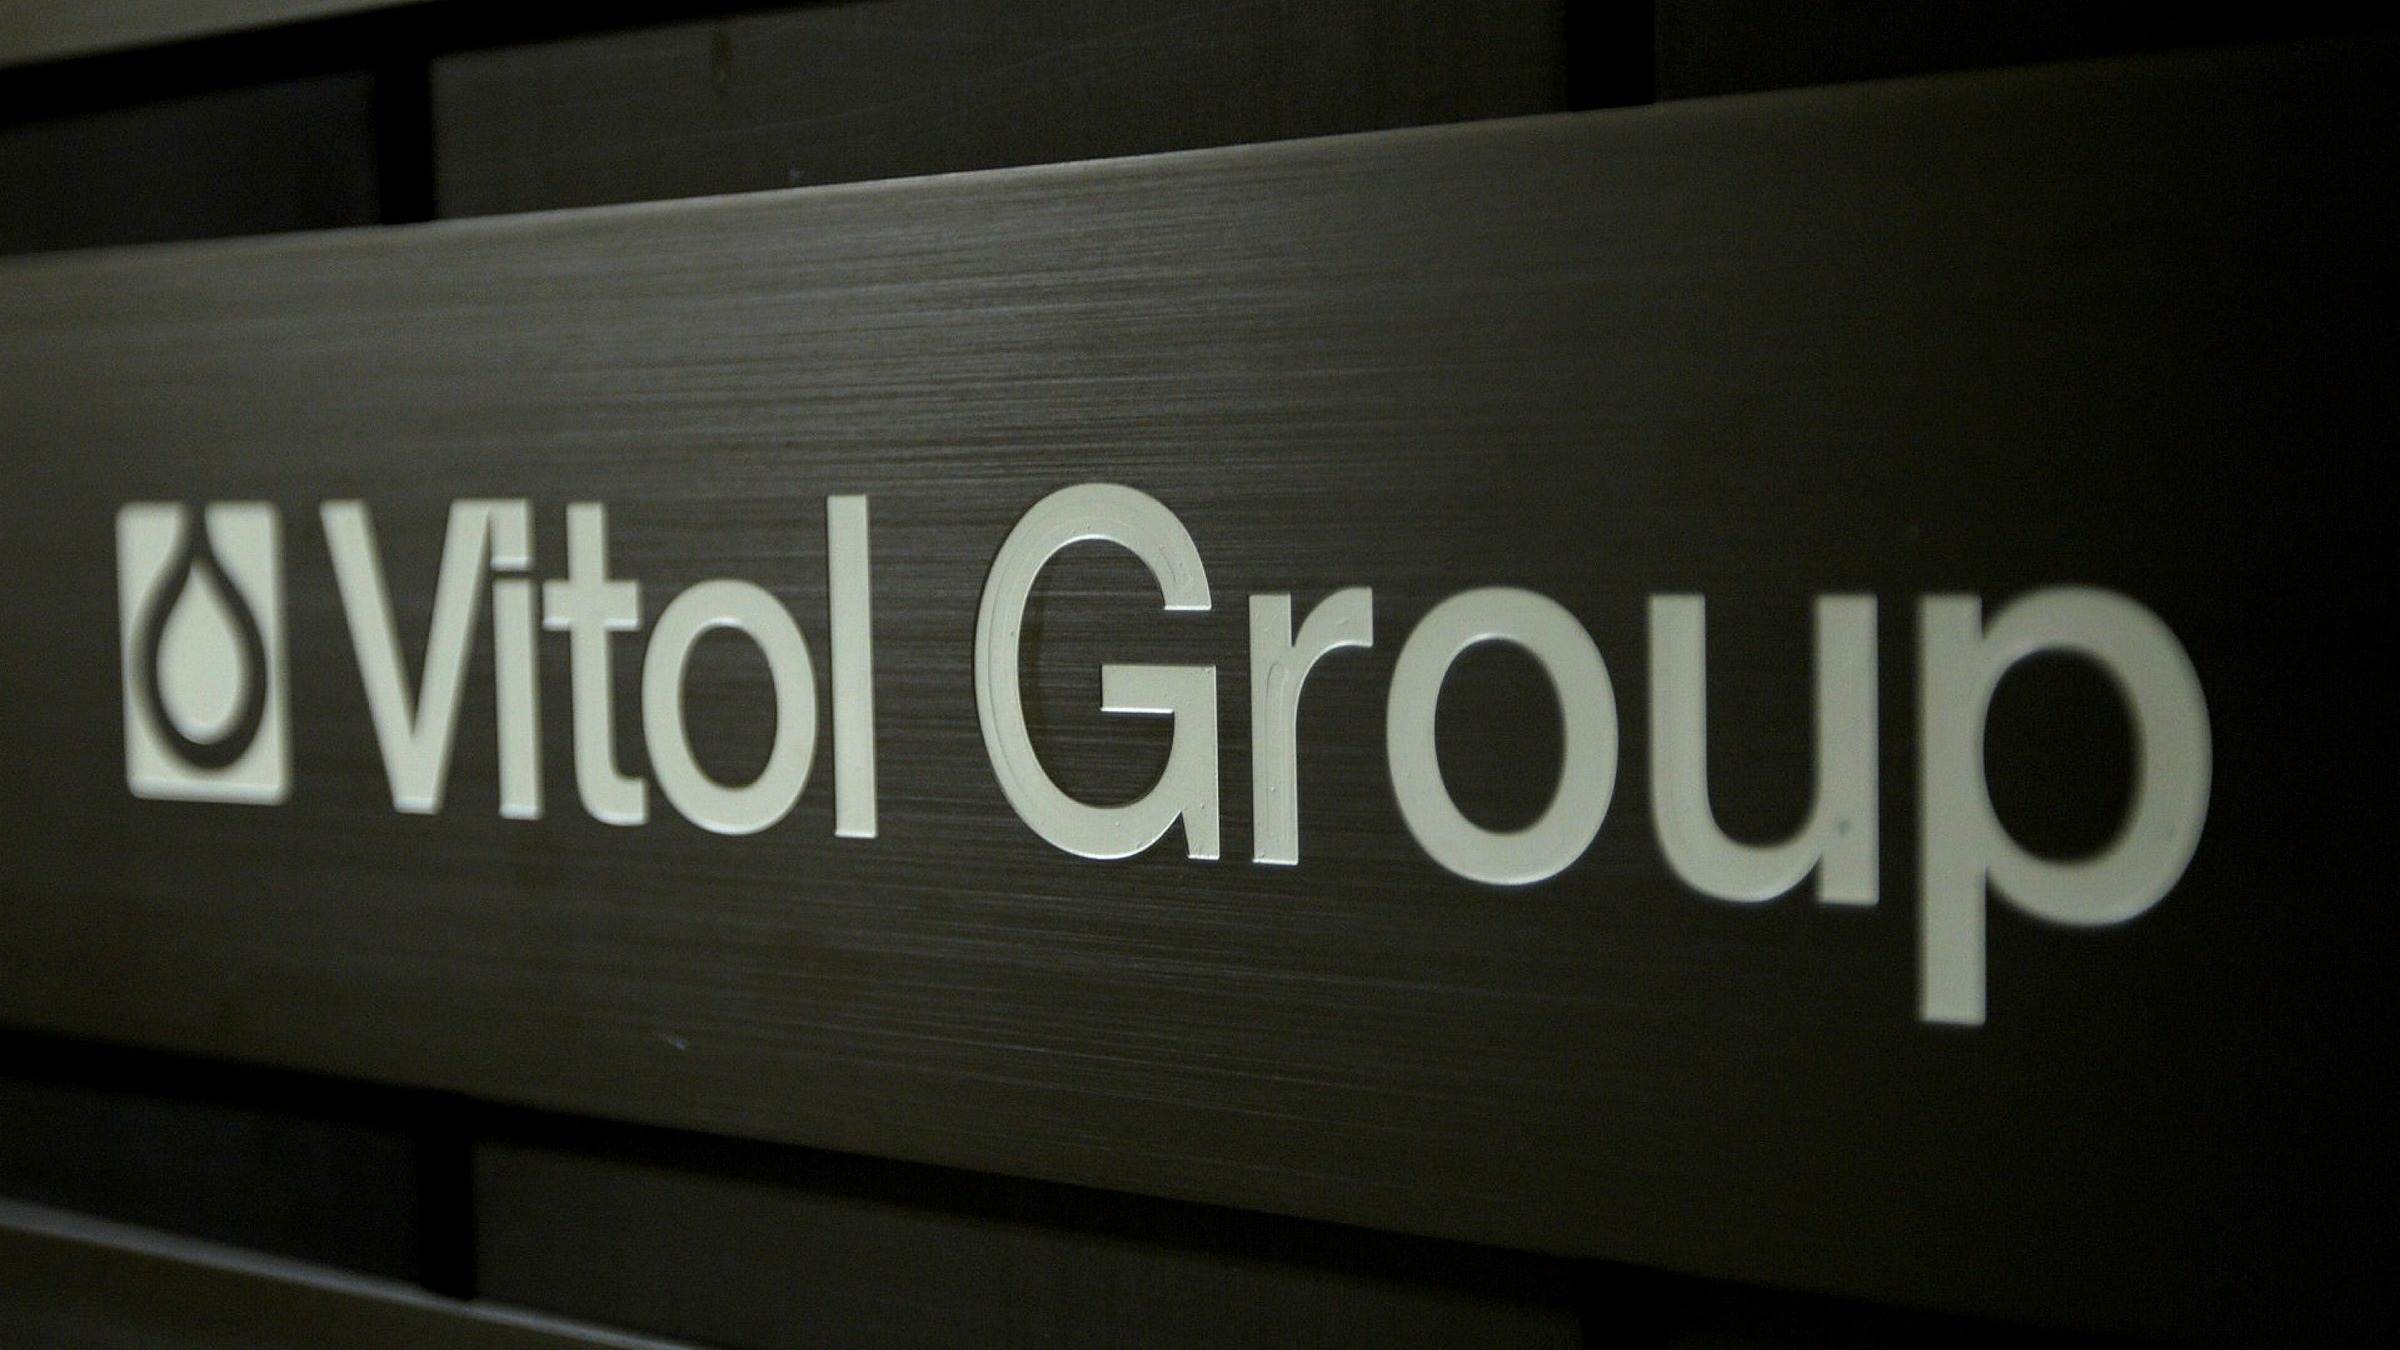 ft.com - David Sheppard and Neil Hume - Oil trader Vitol hands top staff equivalent of $7m each